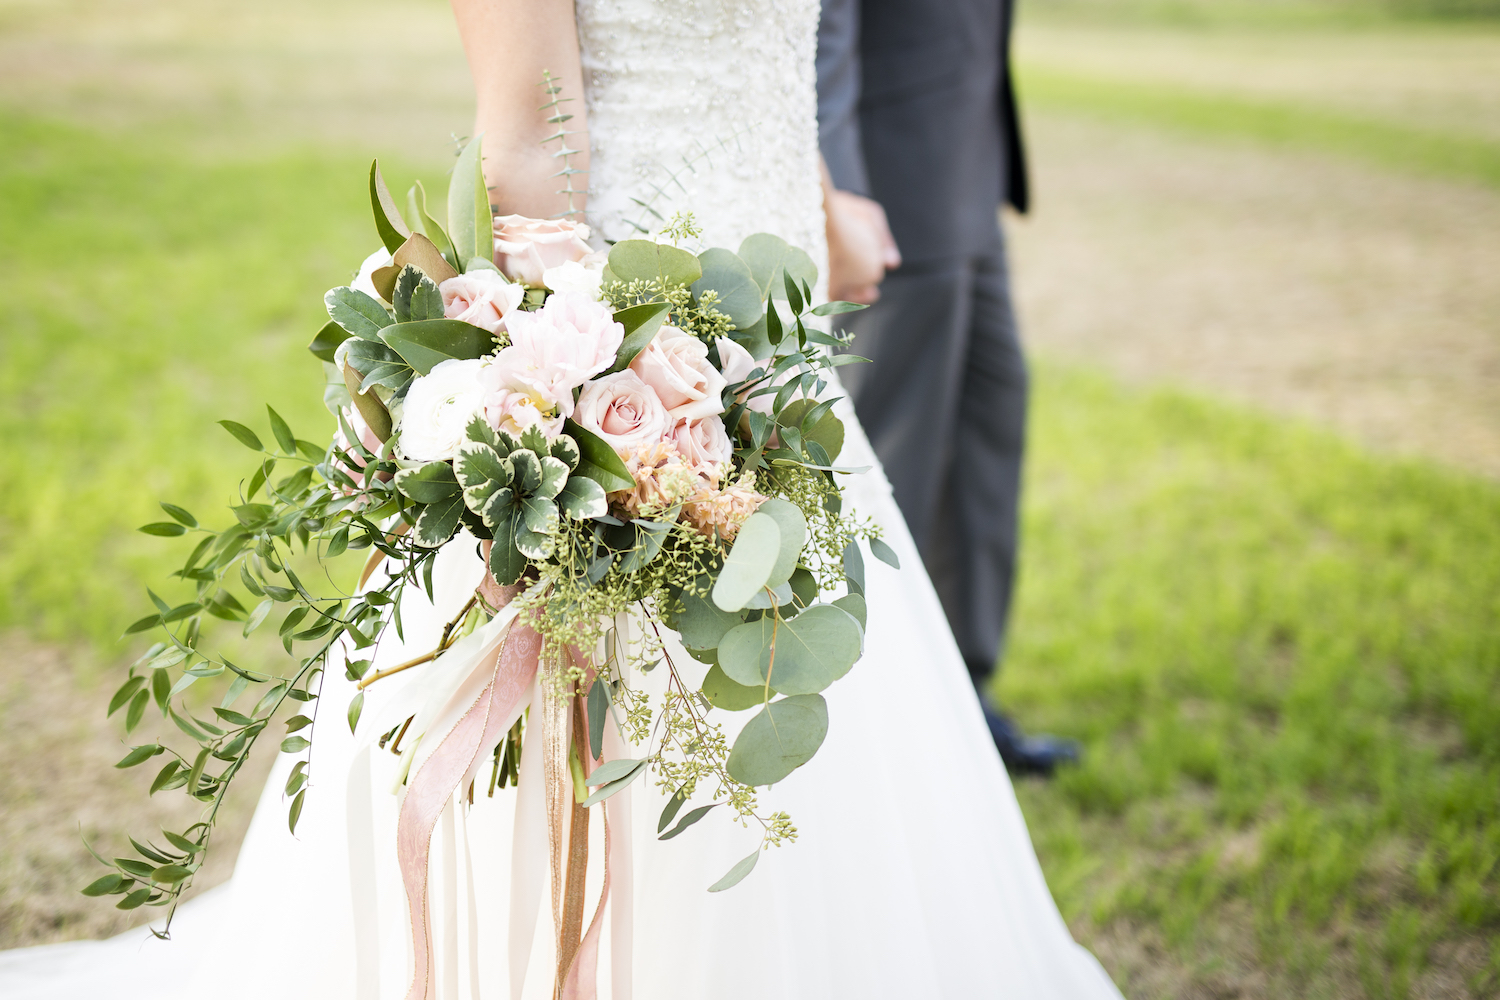 A Gorgeous Peachy Pink Bridal Bouquet with Cascading Greenery / photo by Kevyn Dixon Photo